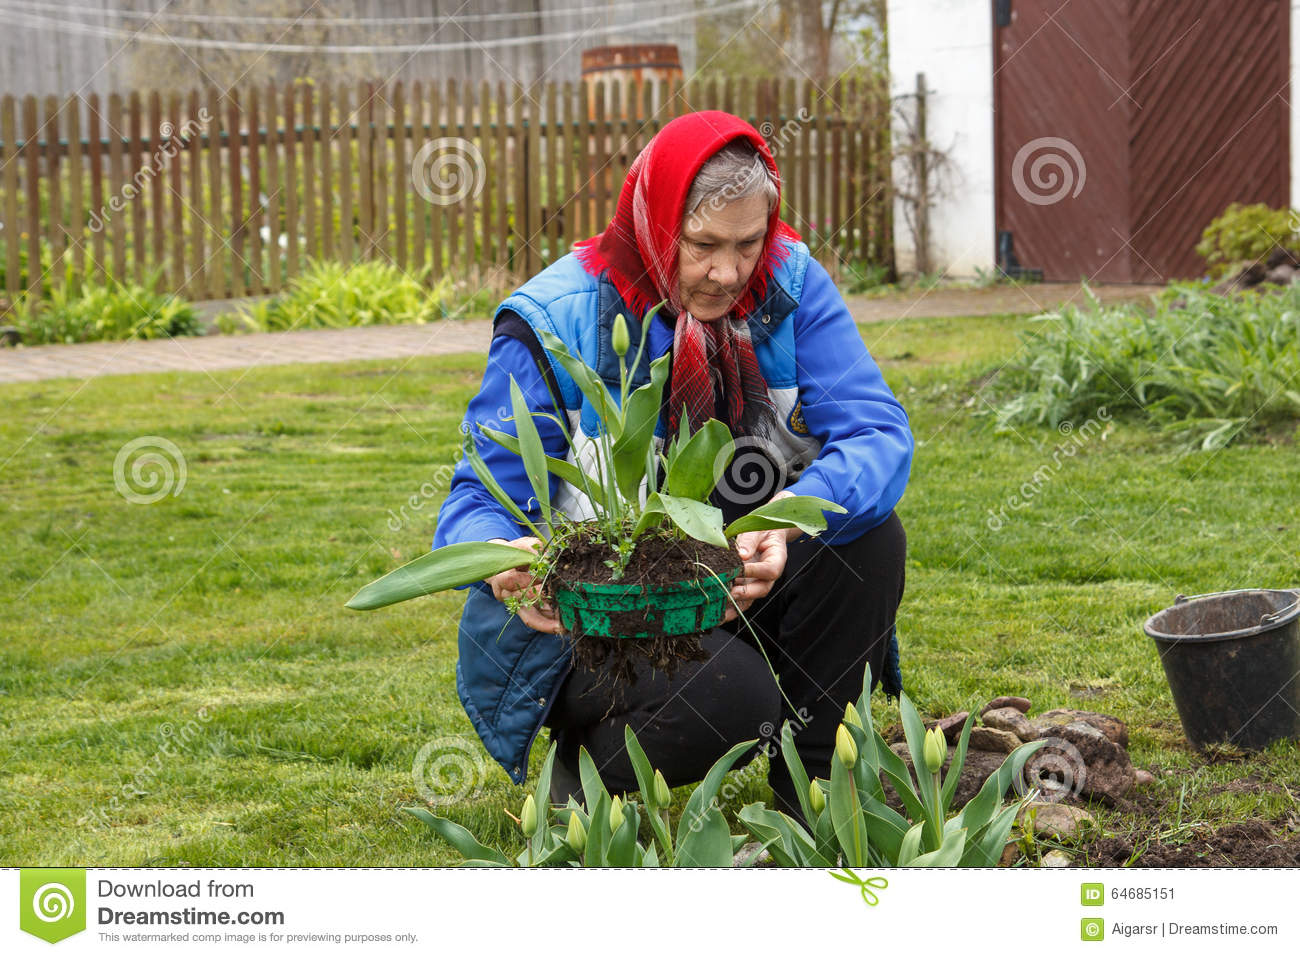 6fa0267dbcc6f Old Lady Gardening Stock Images - Download 916 Royalty Free Photos